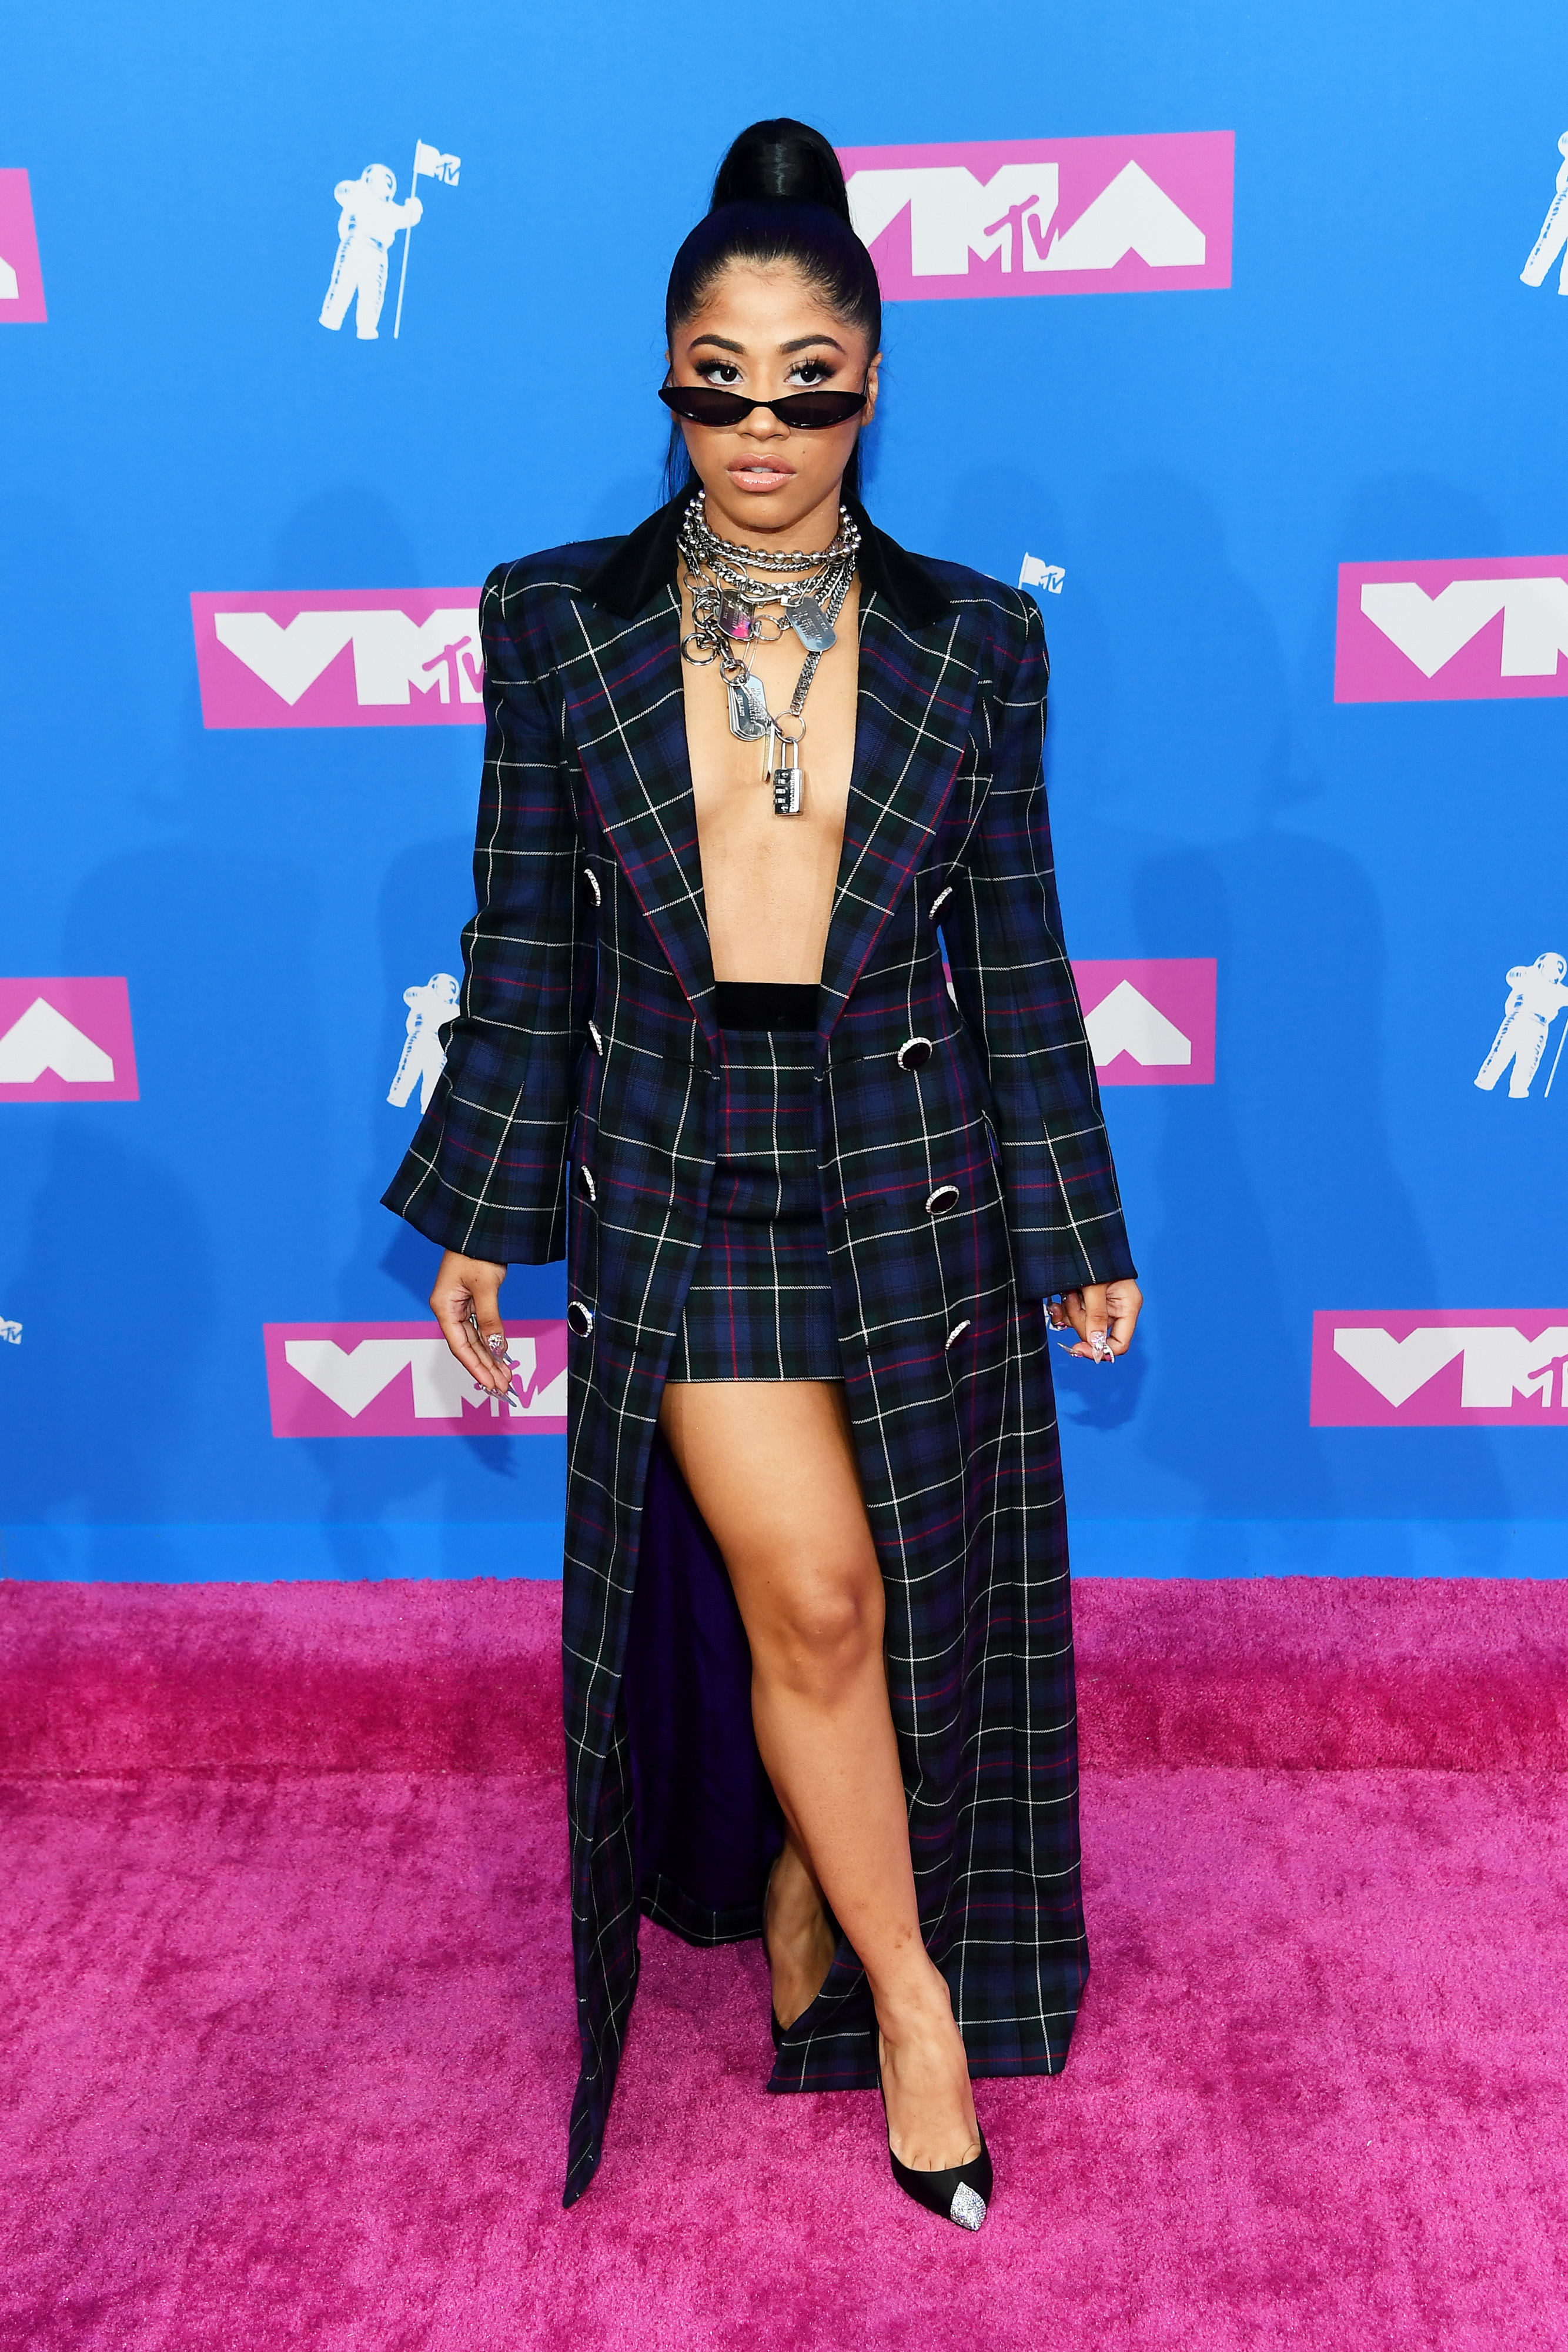 Hennessy Carolina attends the 2018 MTV Video Music Awards at Radio City Music Hall on August 20, 2018 in New York City.